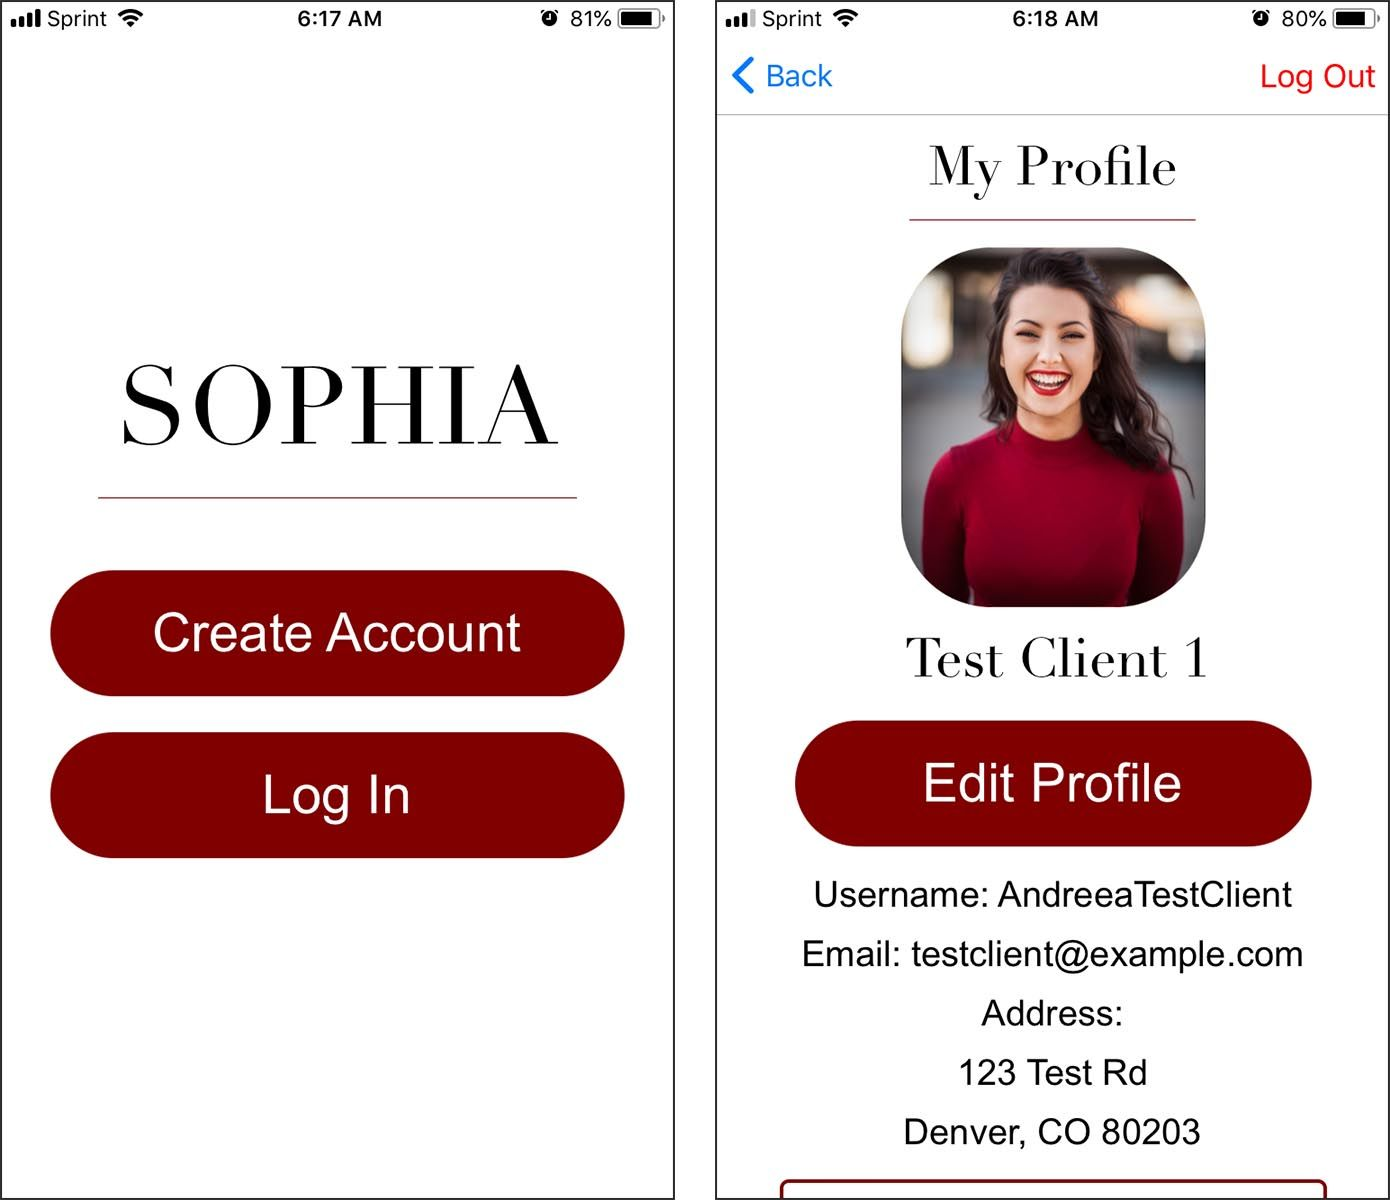 Screen view of the SOPHIA application login page.